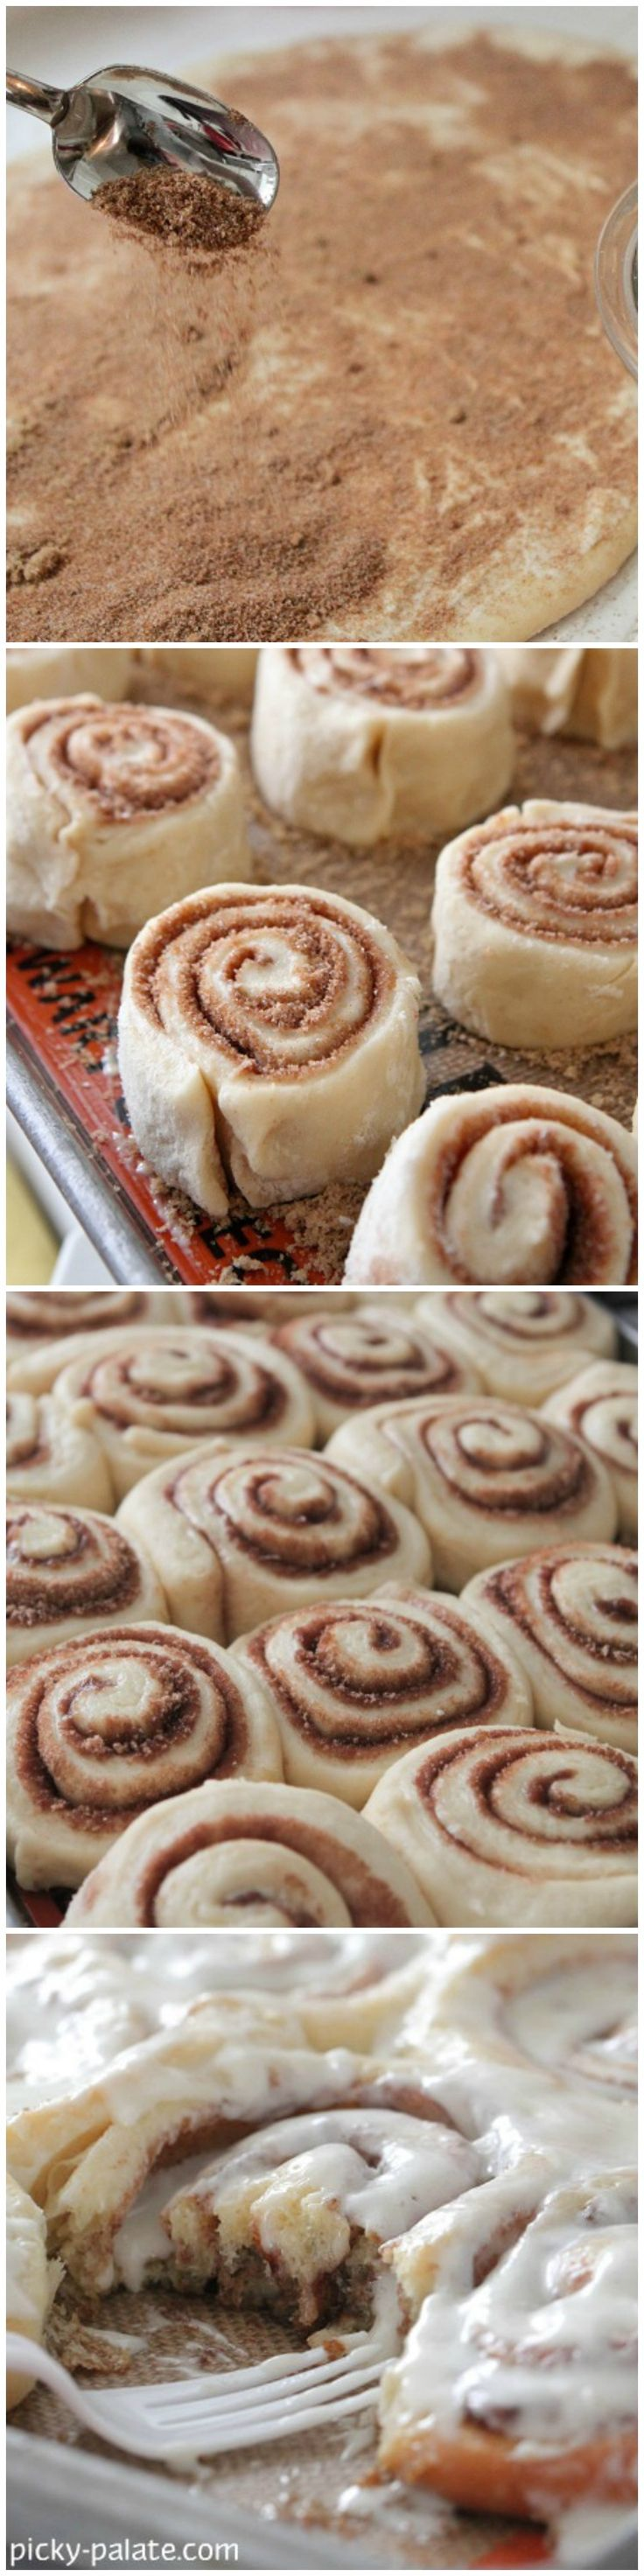 How To Make The Perfect Cinnamon Rolls, worth every calorie :)